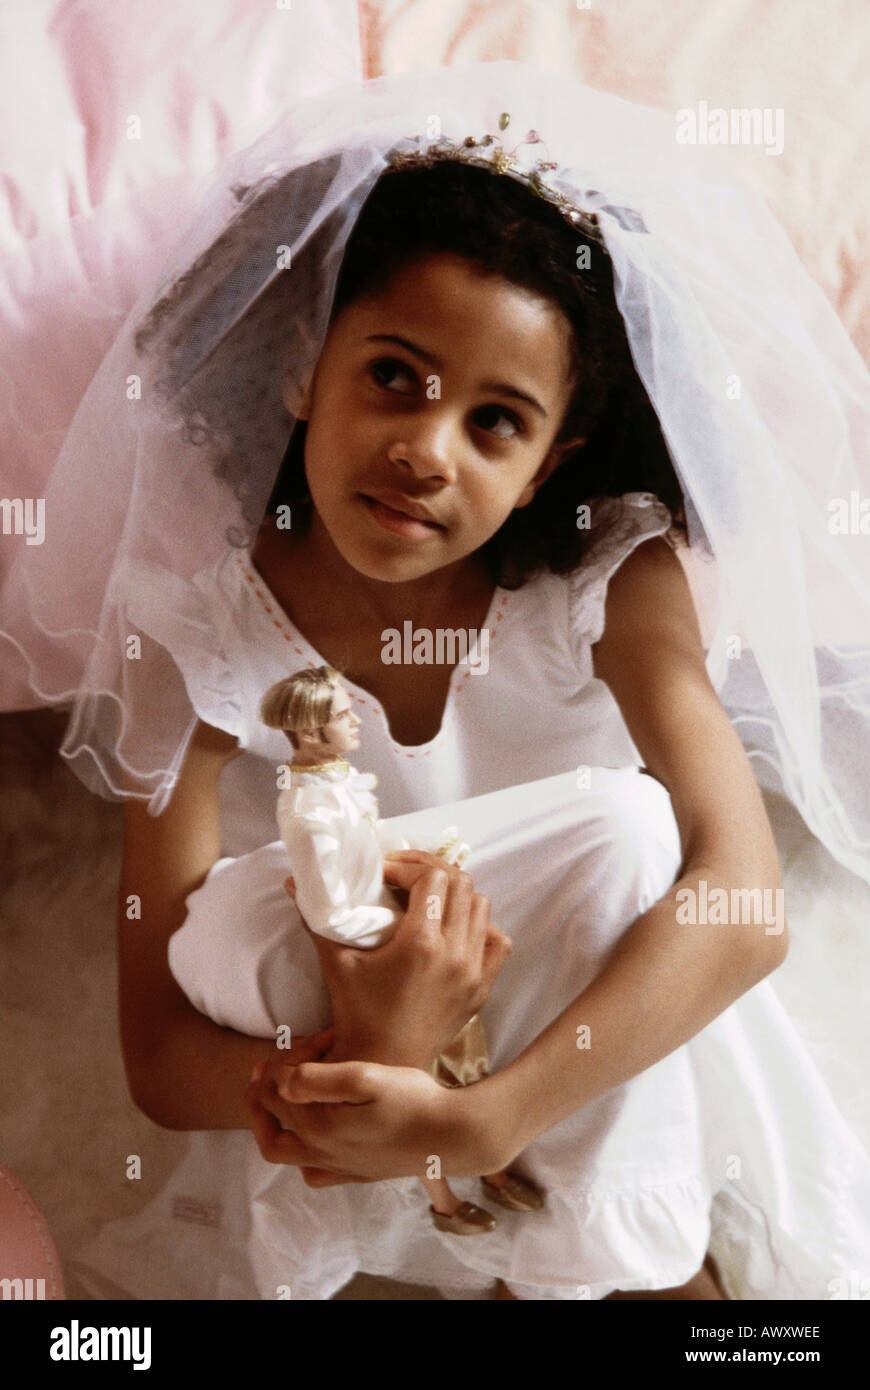 Little Black Girl Dreaming Of Her Wedding Day With Her Prince